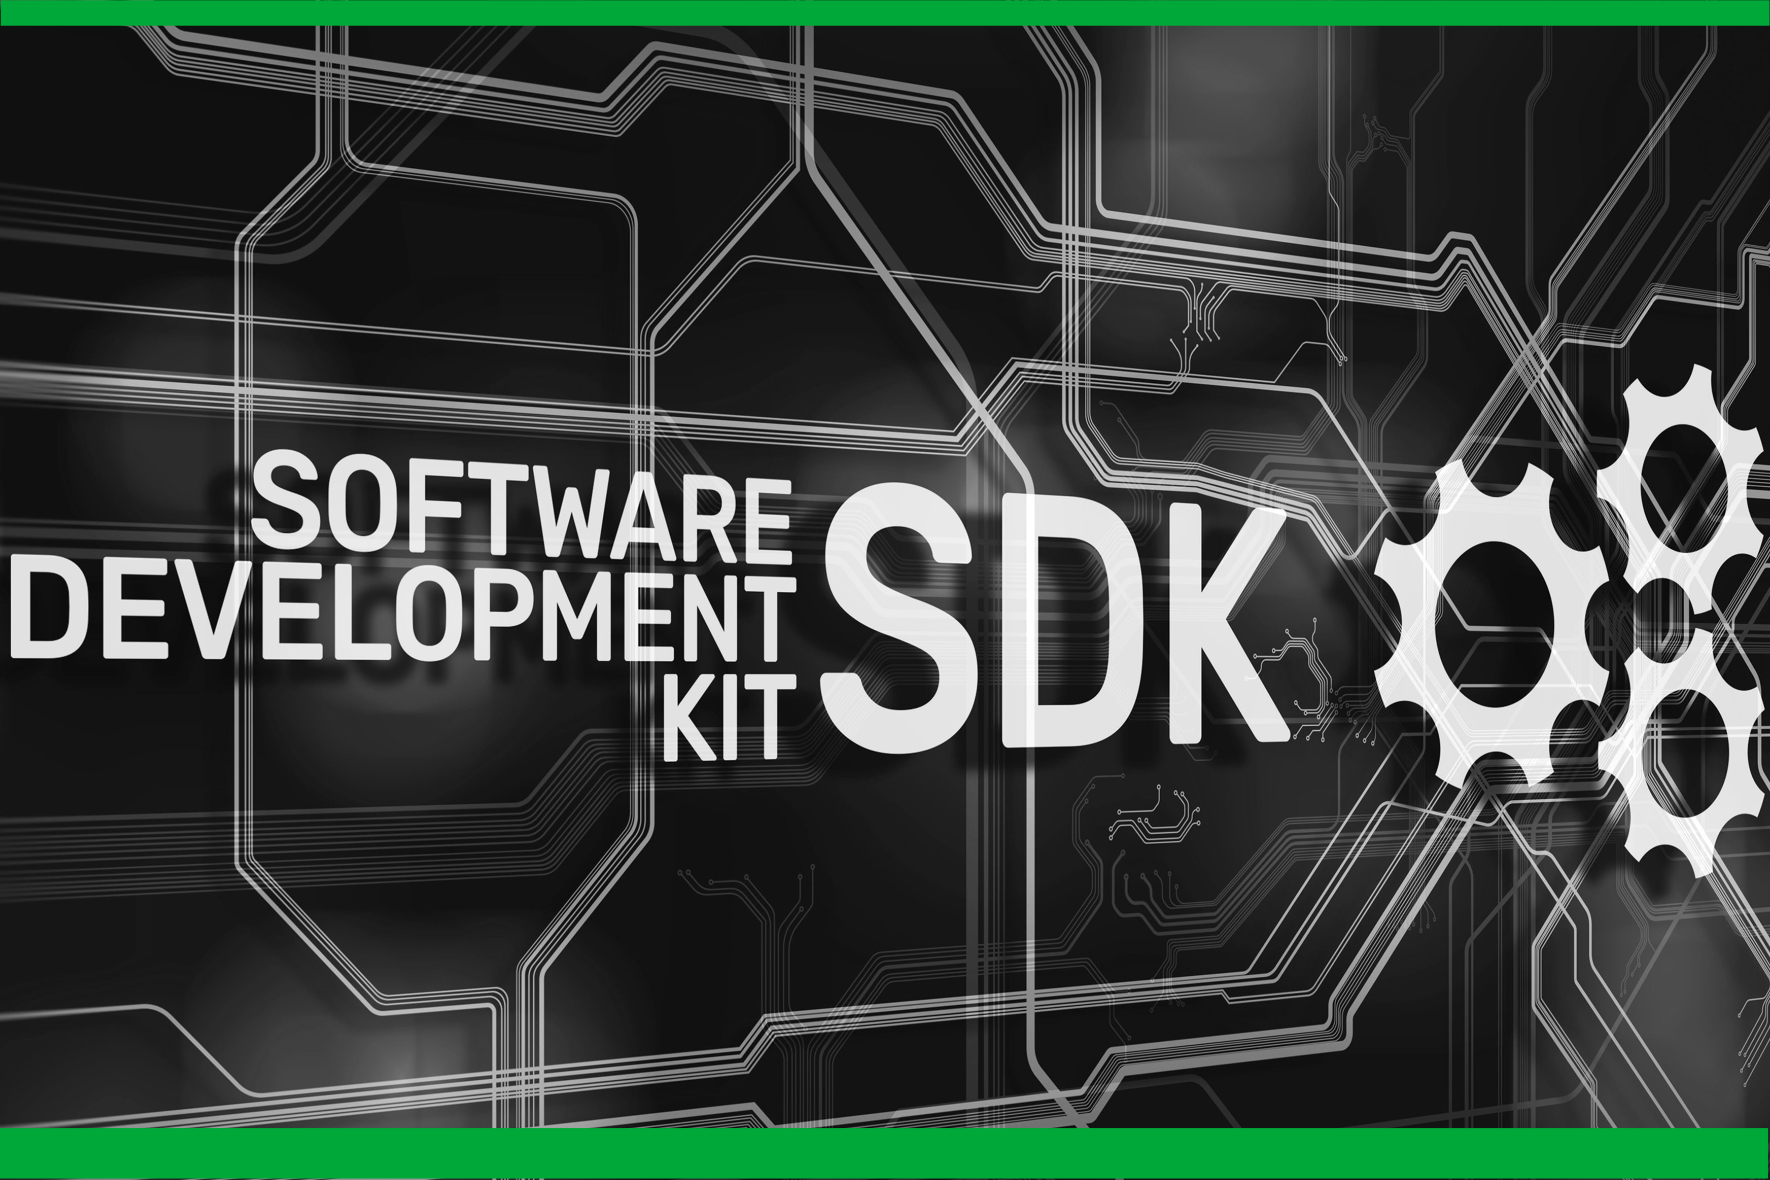 Software Development Kit ArkNo@h